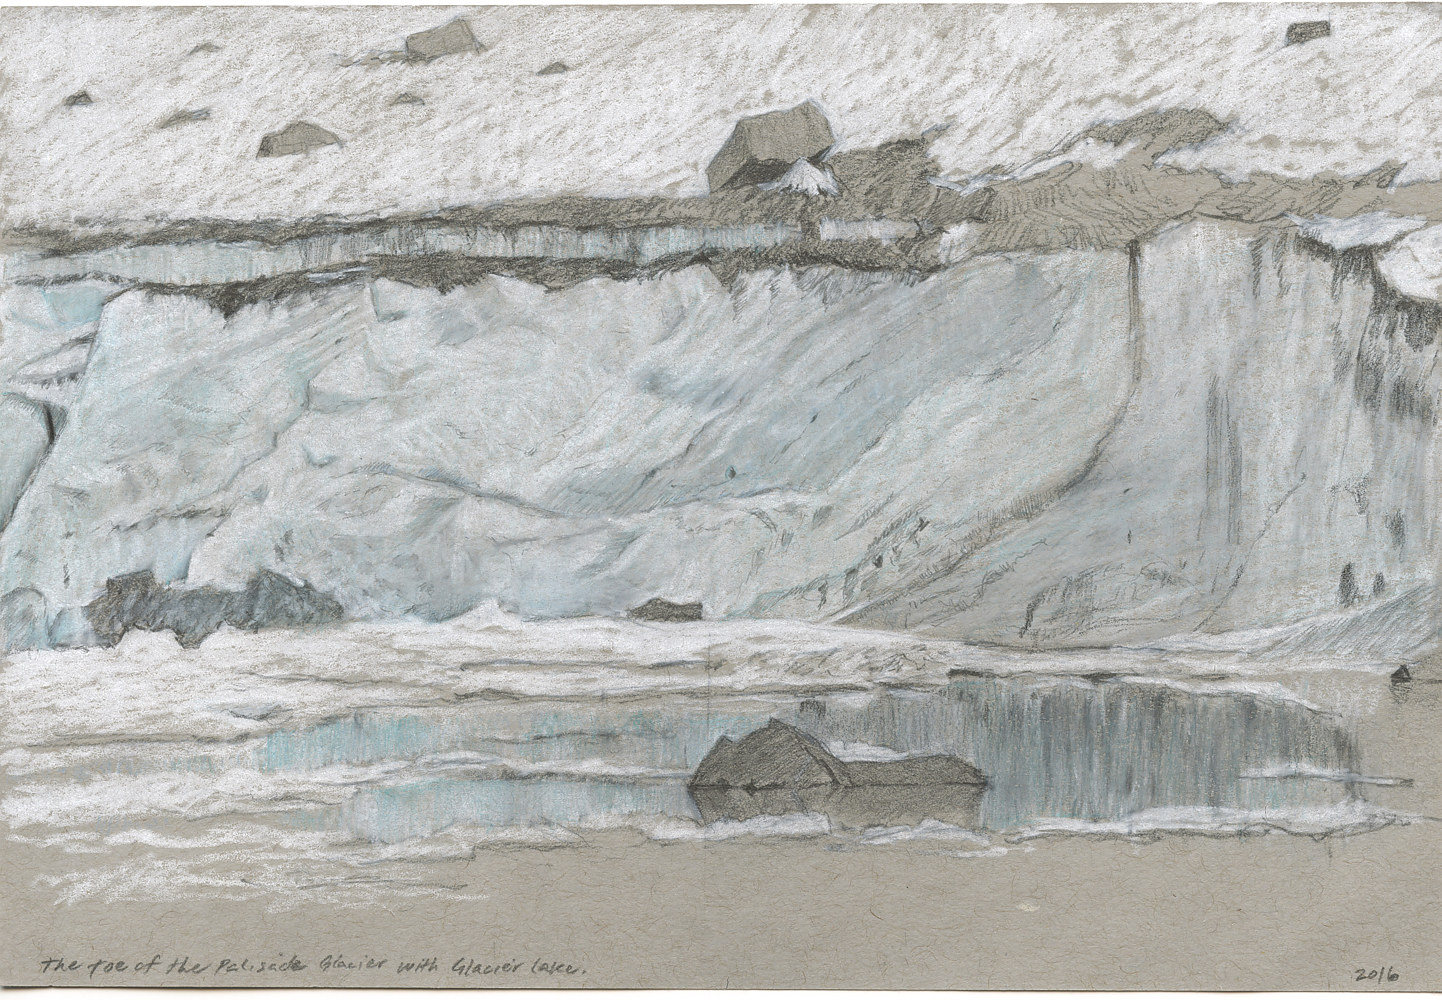 Drawing Toe of the Glacier by Amie Rangel